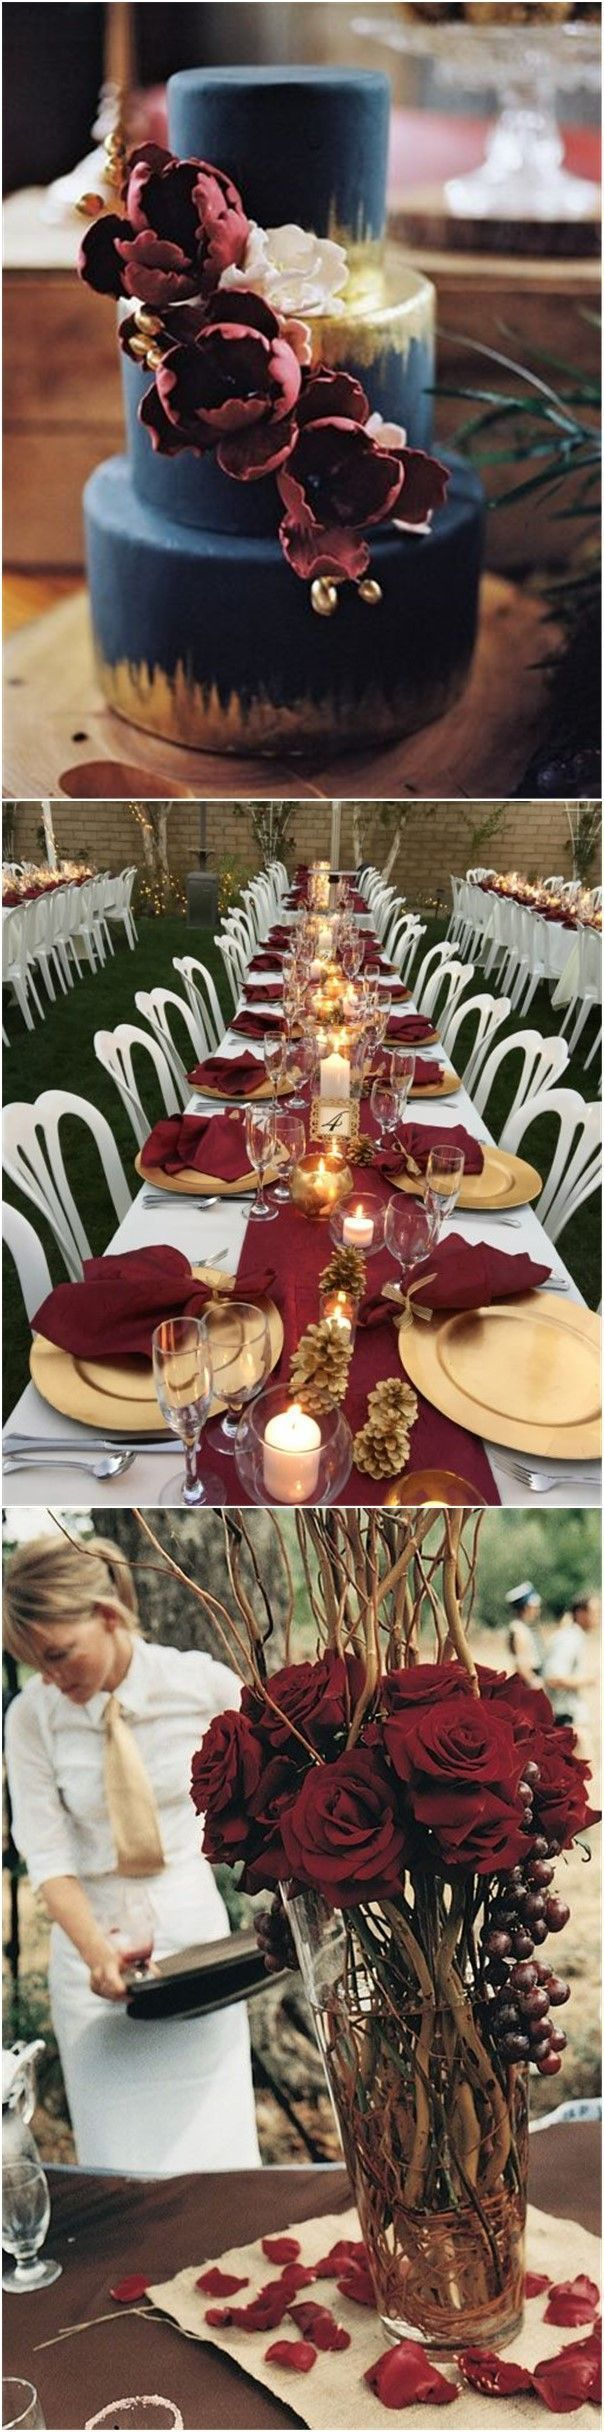 Wedding Colors » 22 Romantic Burgundy and Rose Gold Fall Wedding Ideas » ❤️ See more: http://www.weddinginclude.com/2017/07/romantic-burgundy-and-rose-gold-fall-wedding-ideas/